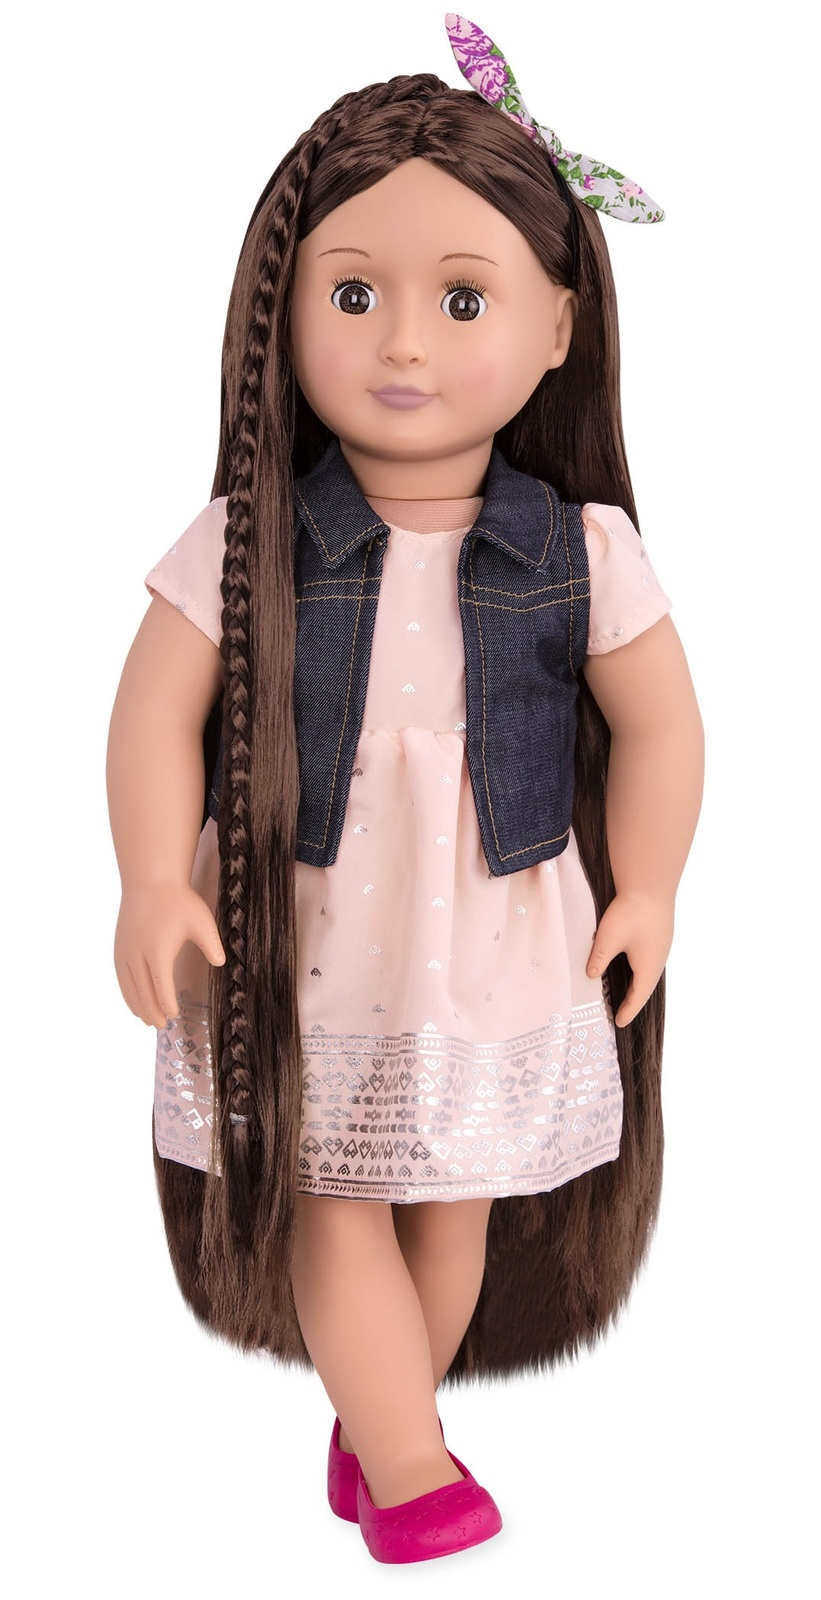 "Our Generation: 18"" Hairgrow Doll - Kaely image"